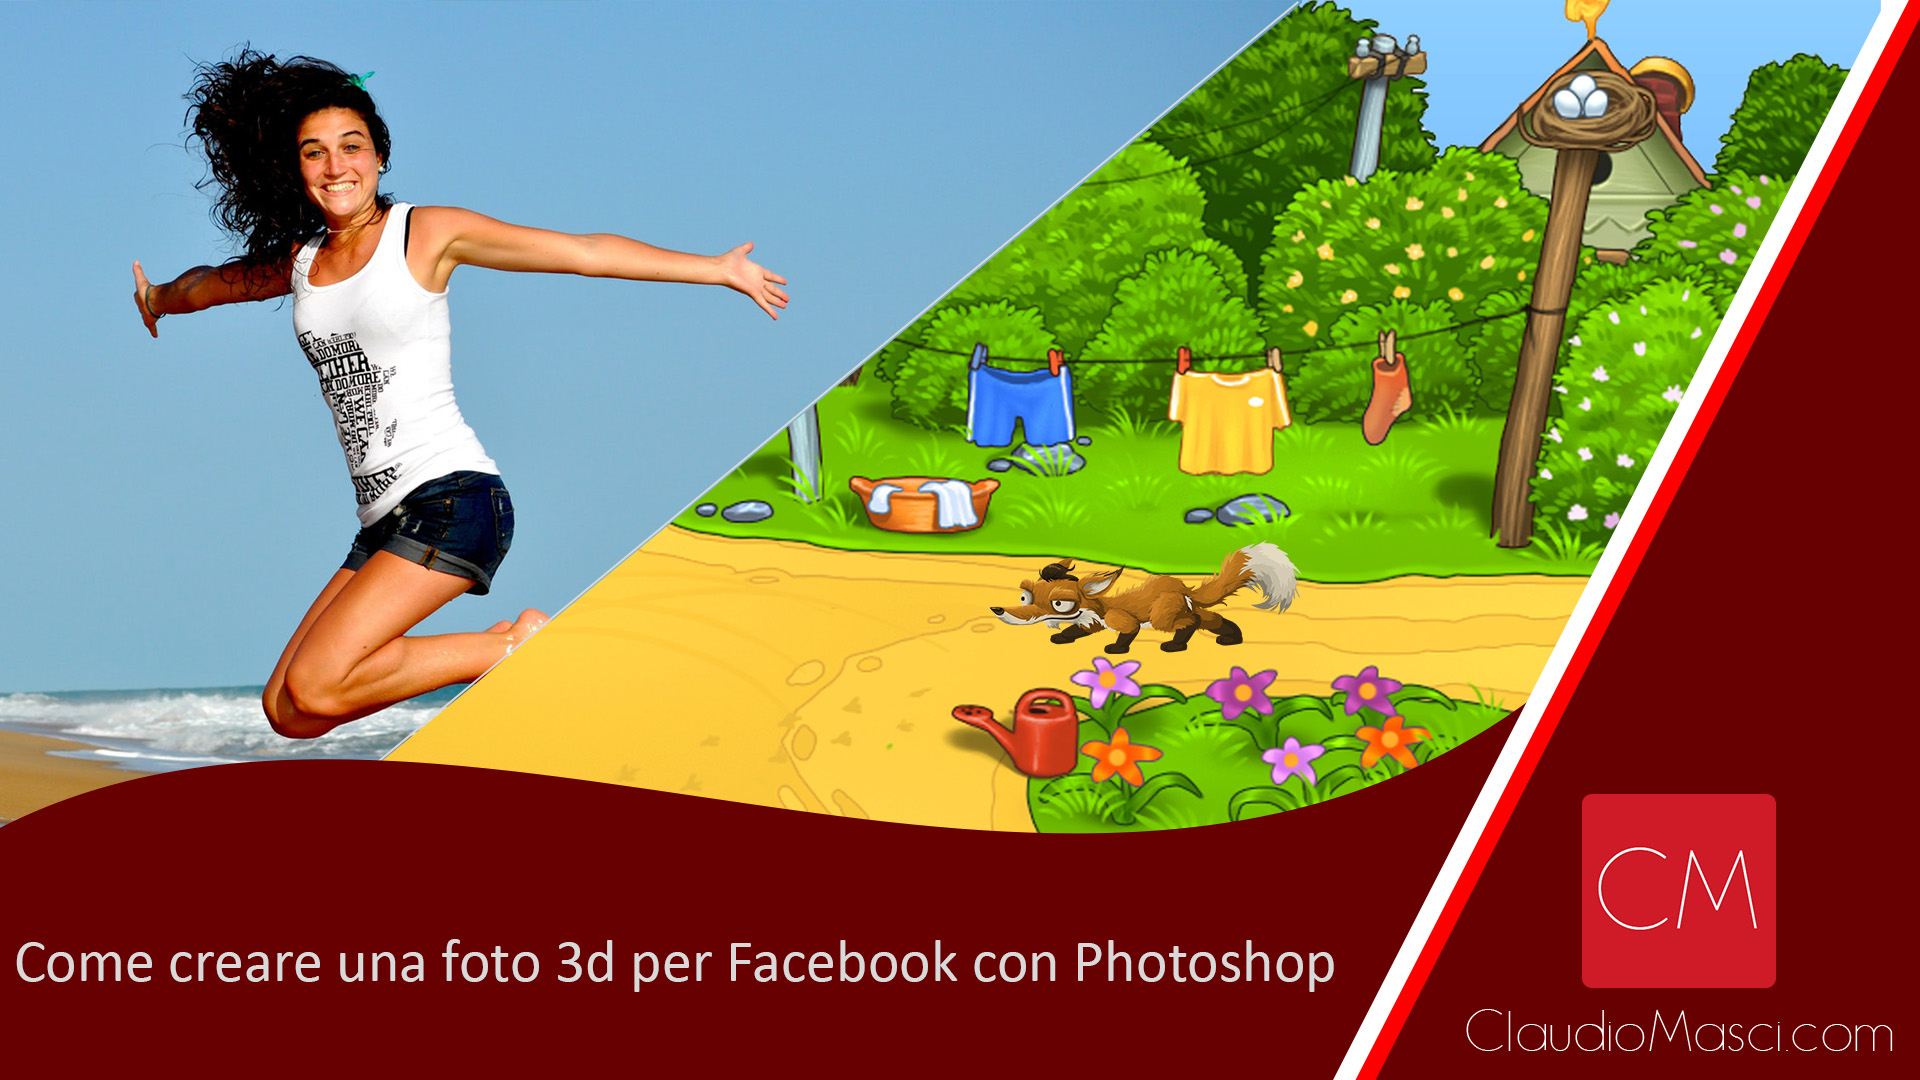 Come creare una foto 3d per Facebook con Photoshop